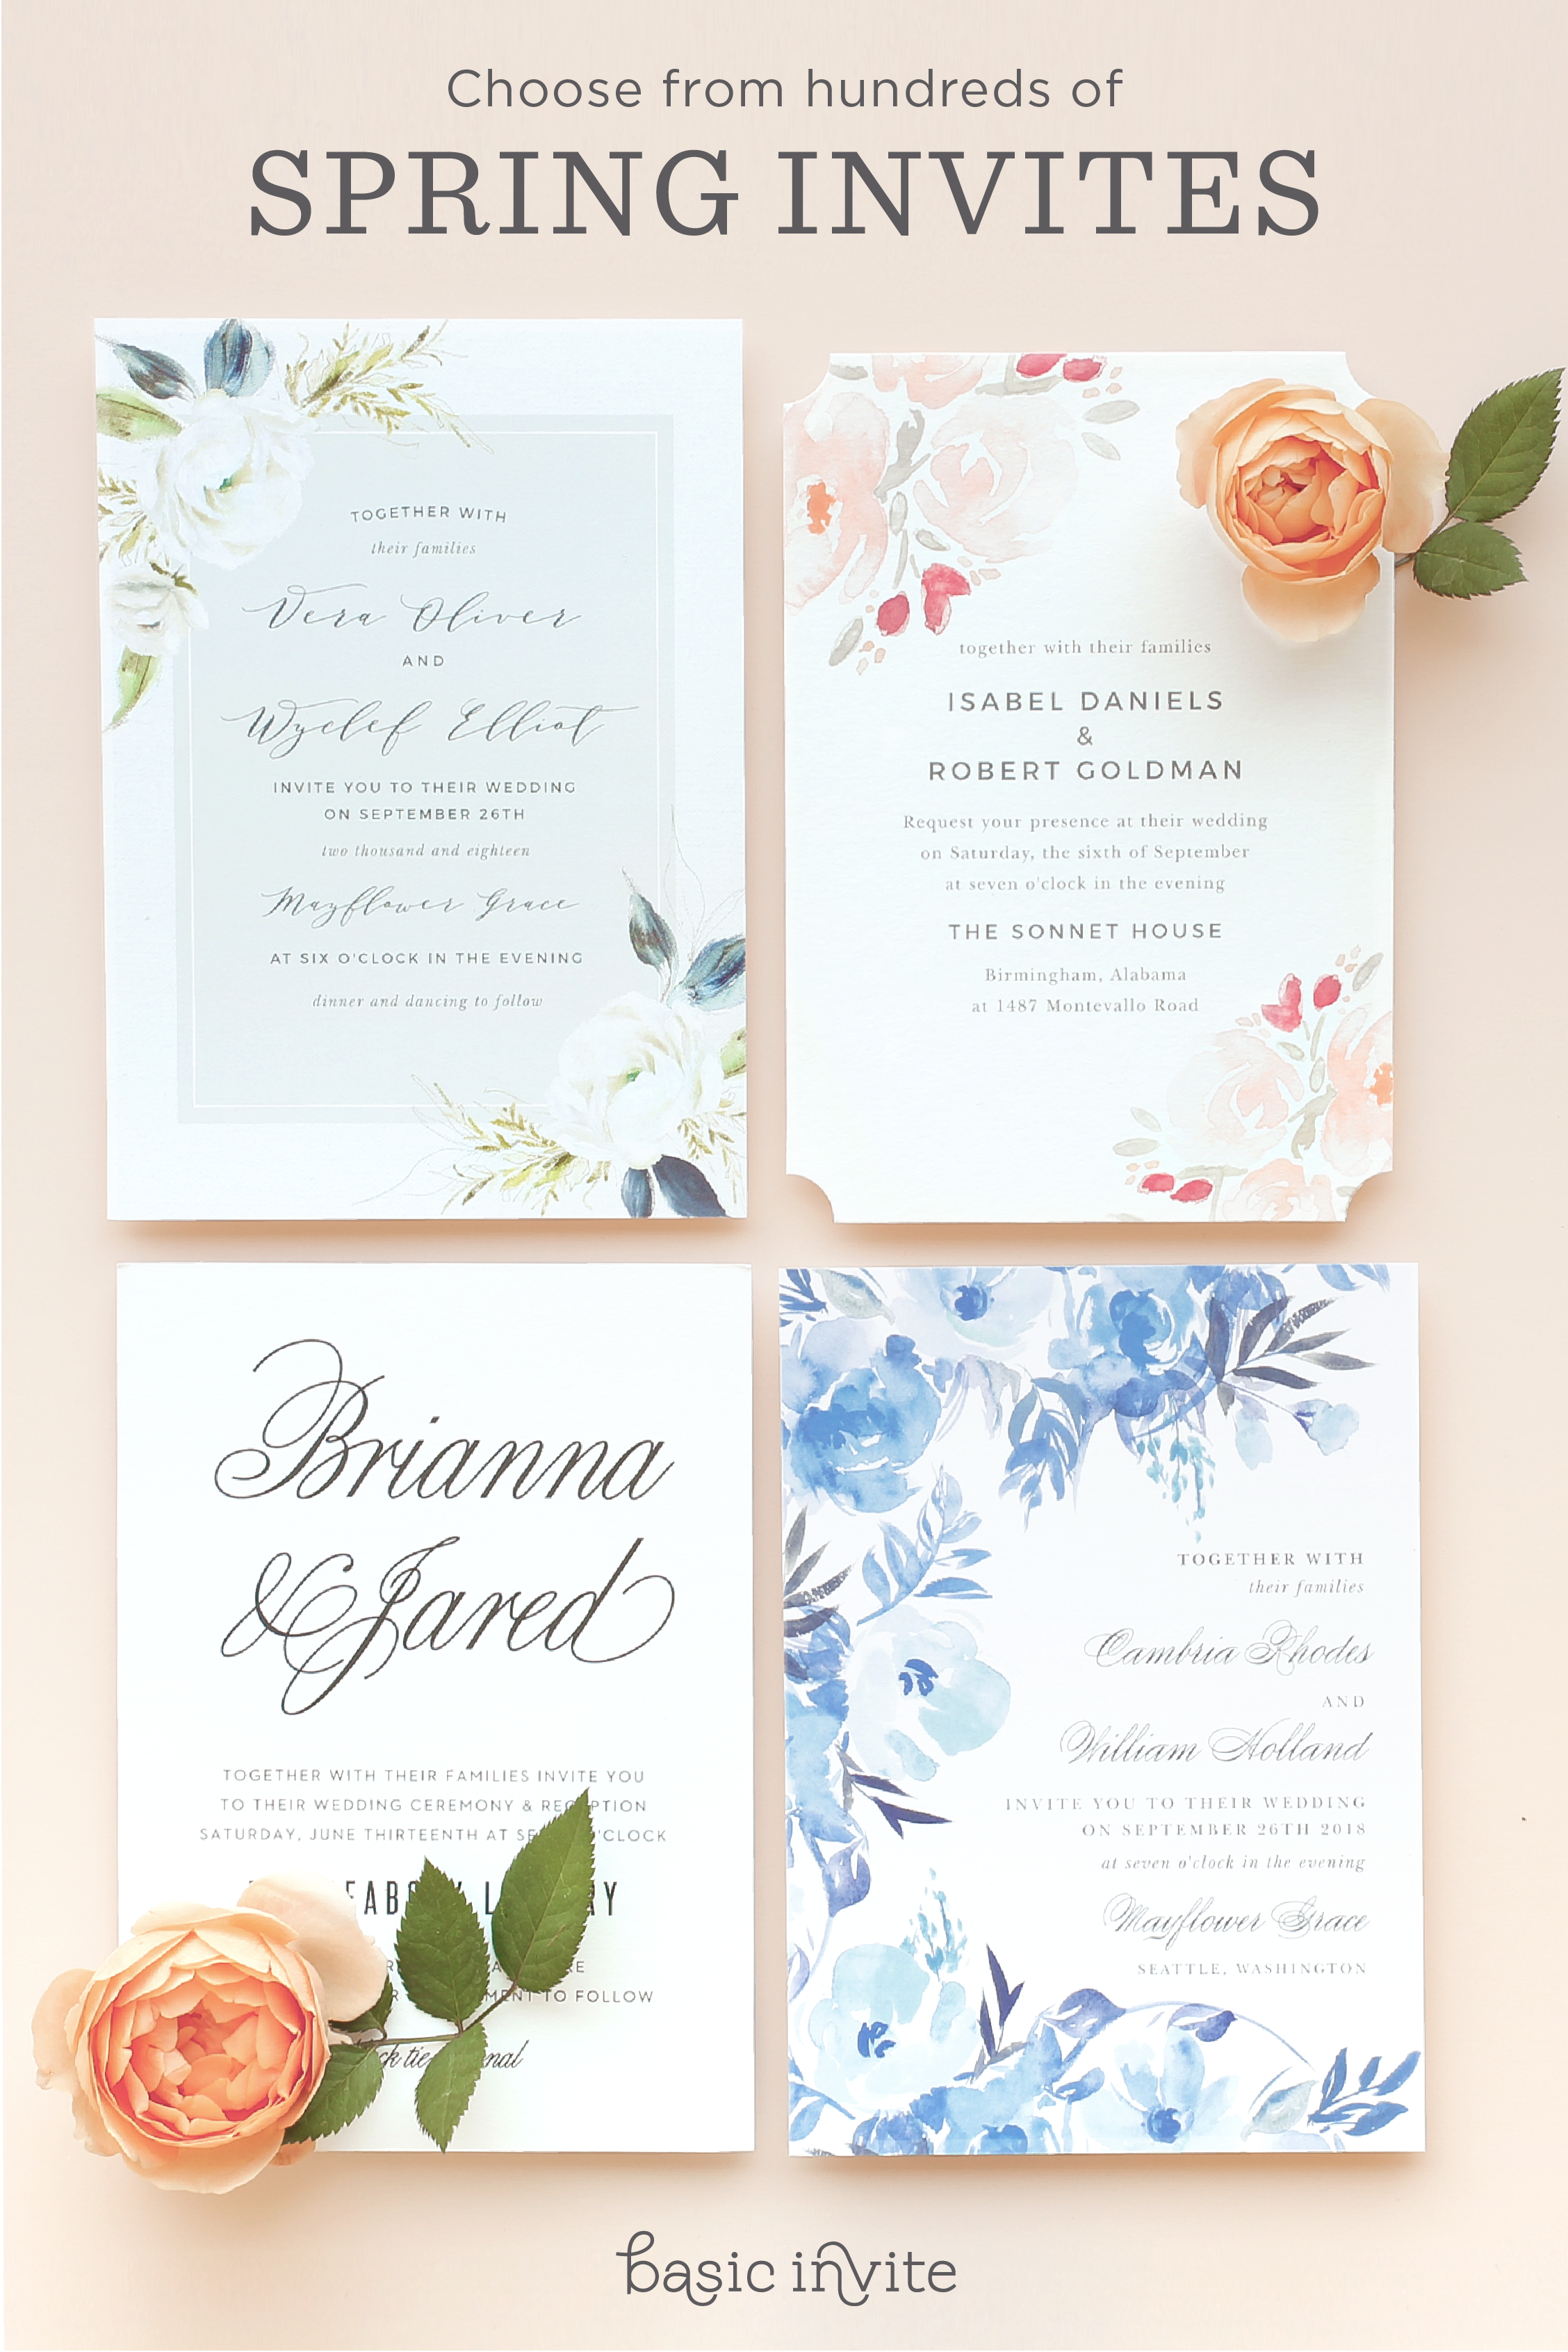 800+ wedding invitations that can be instantly designed online in ...